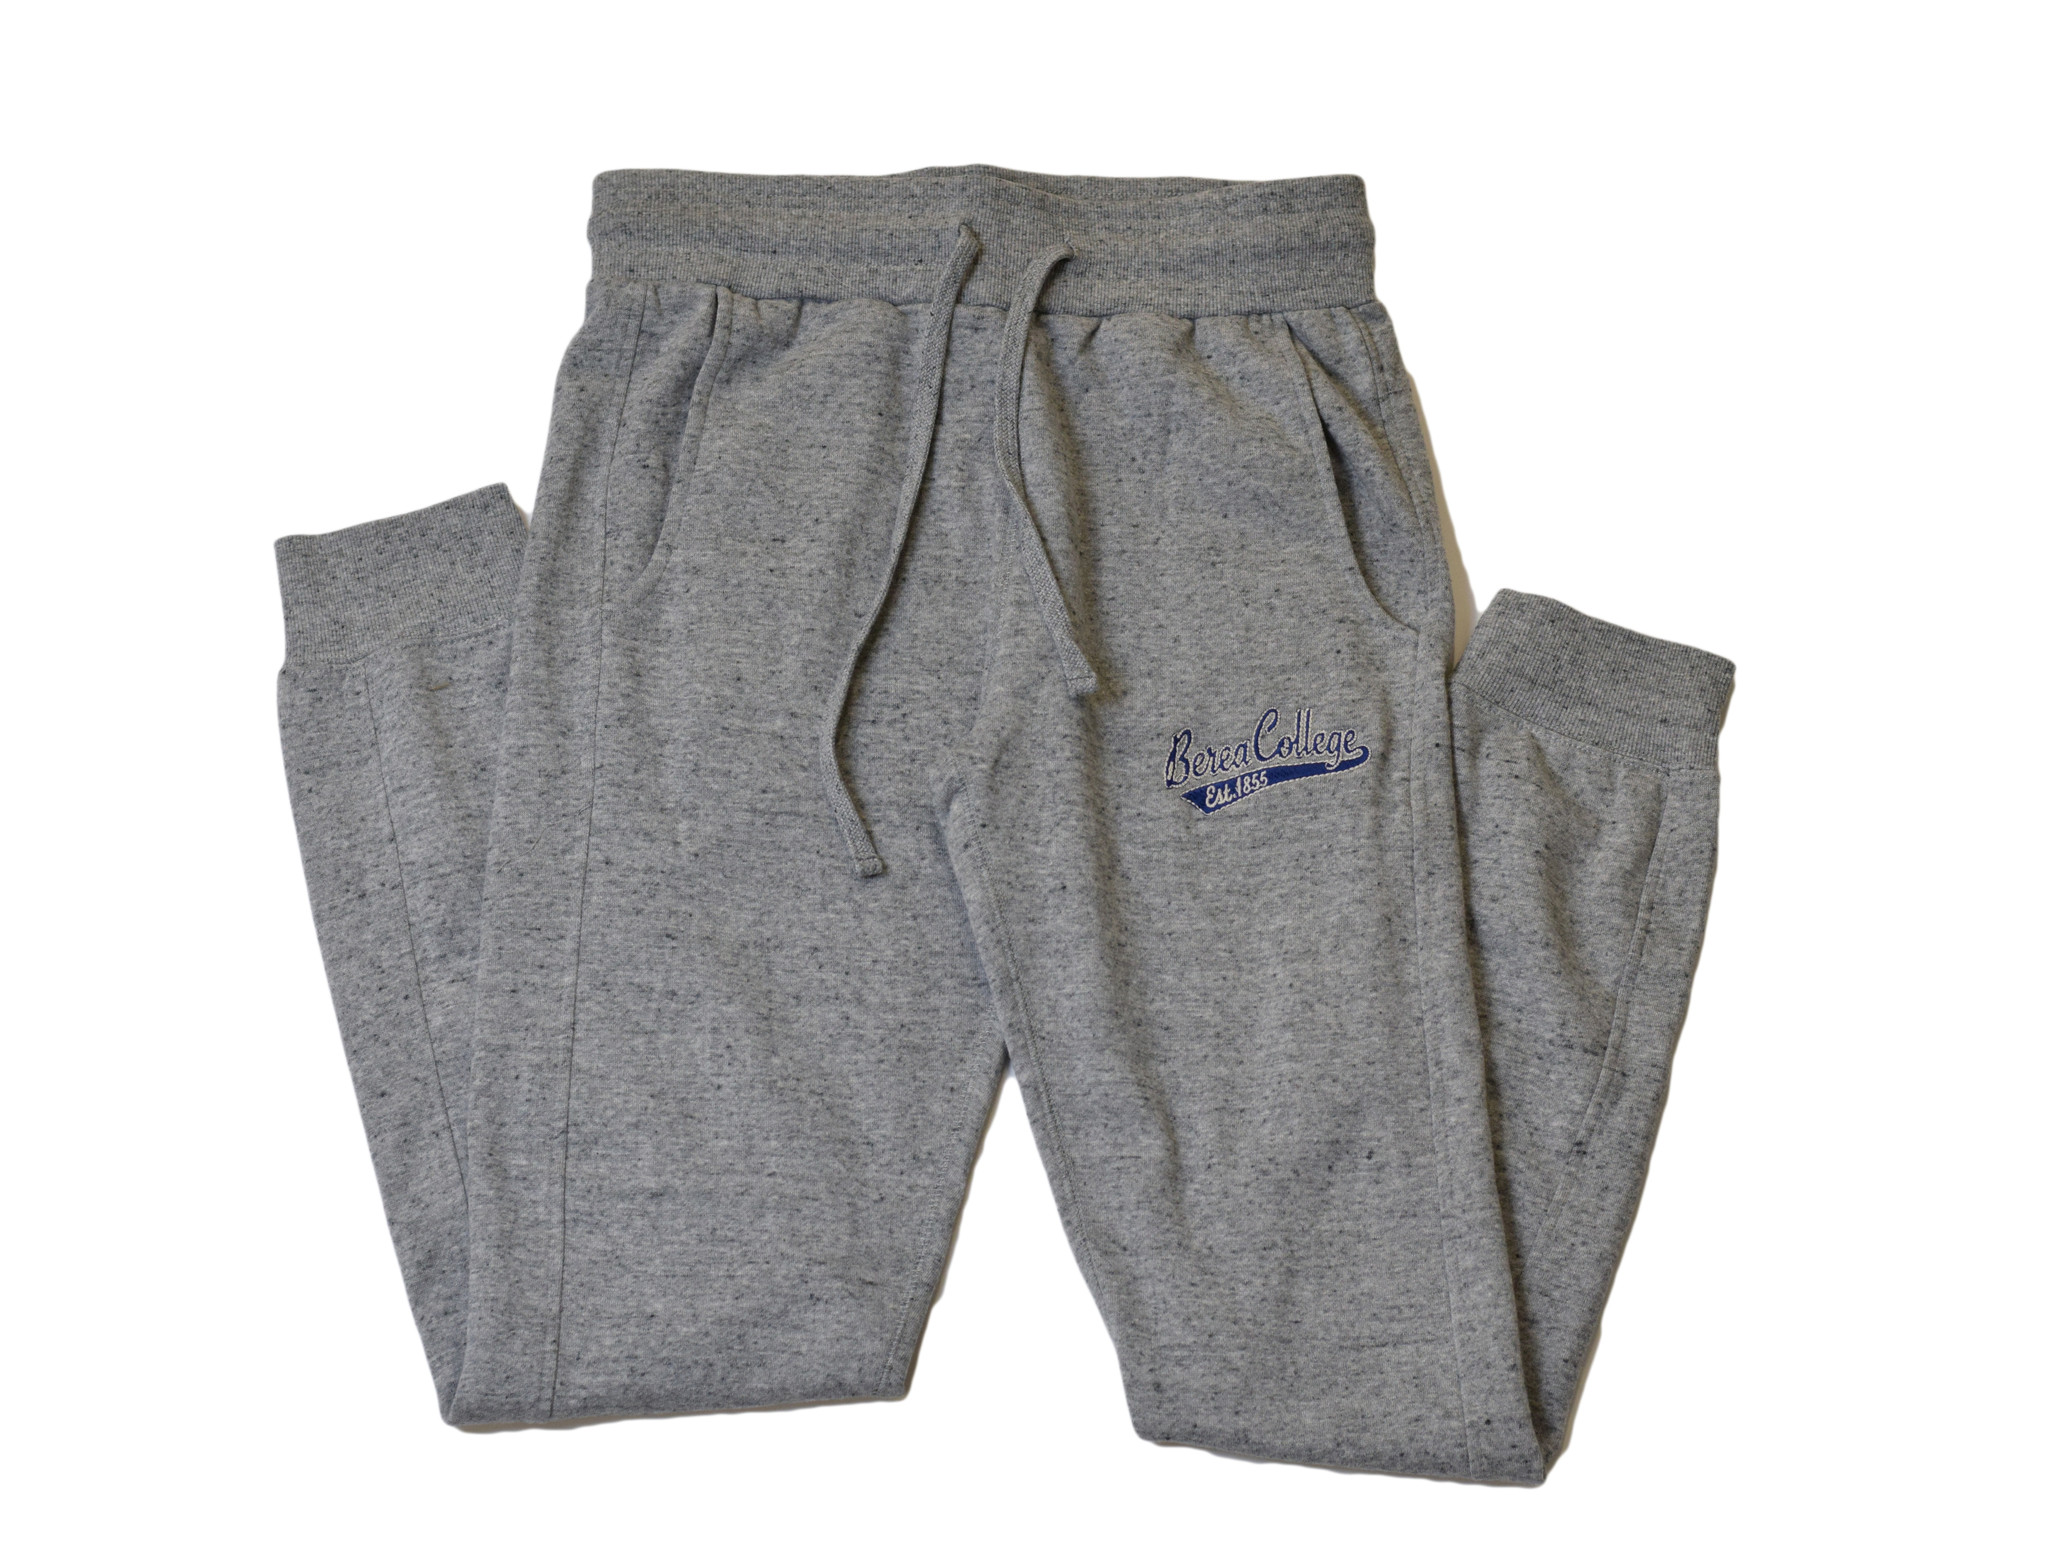 Heather Berea College 1855 Sweatpants-1